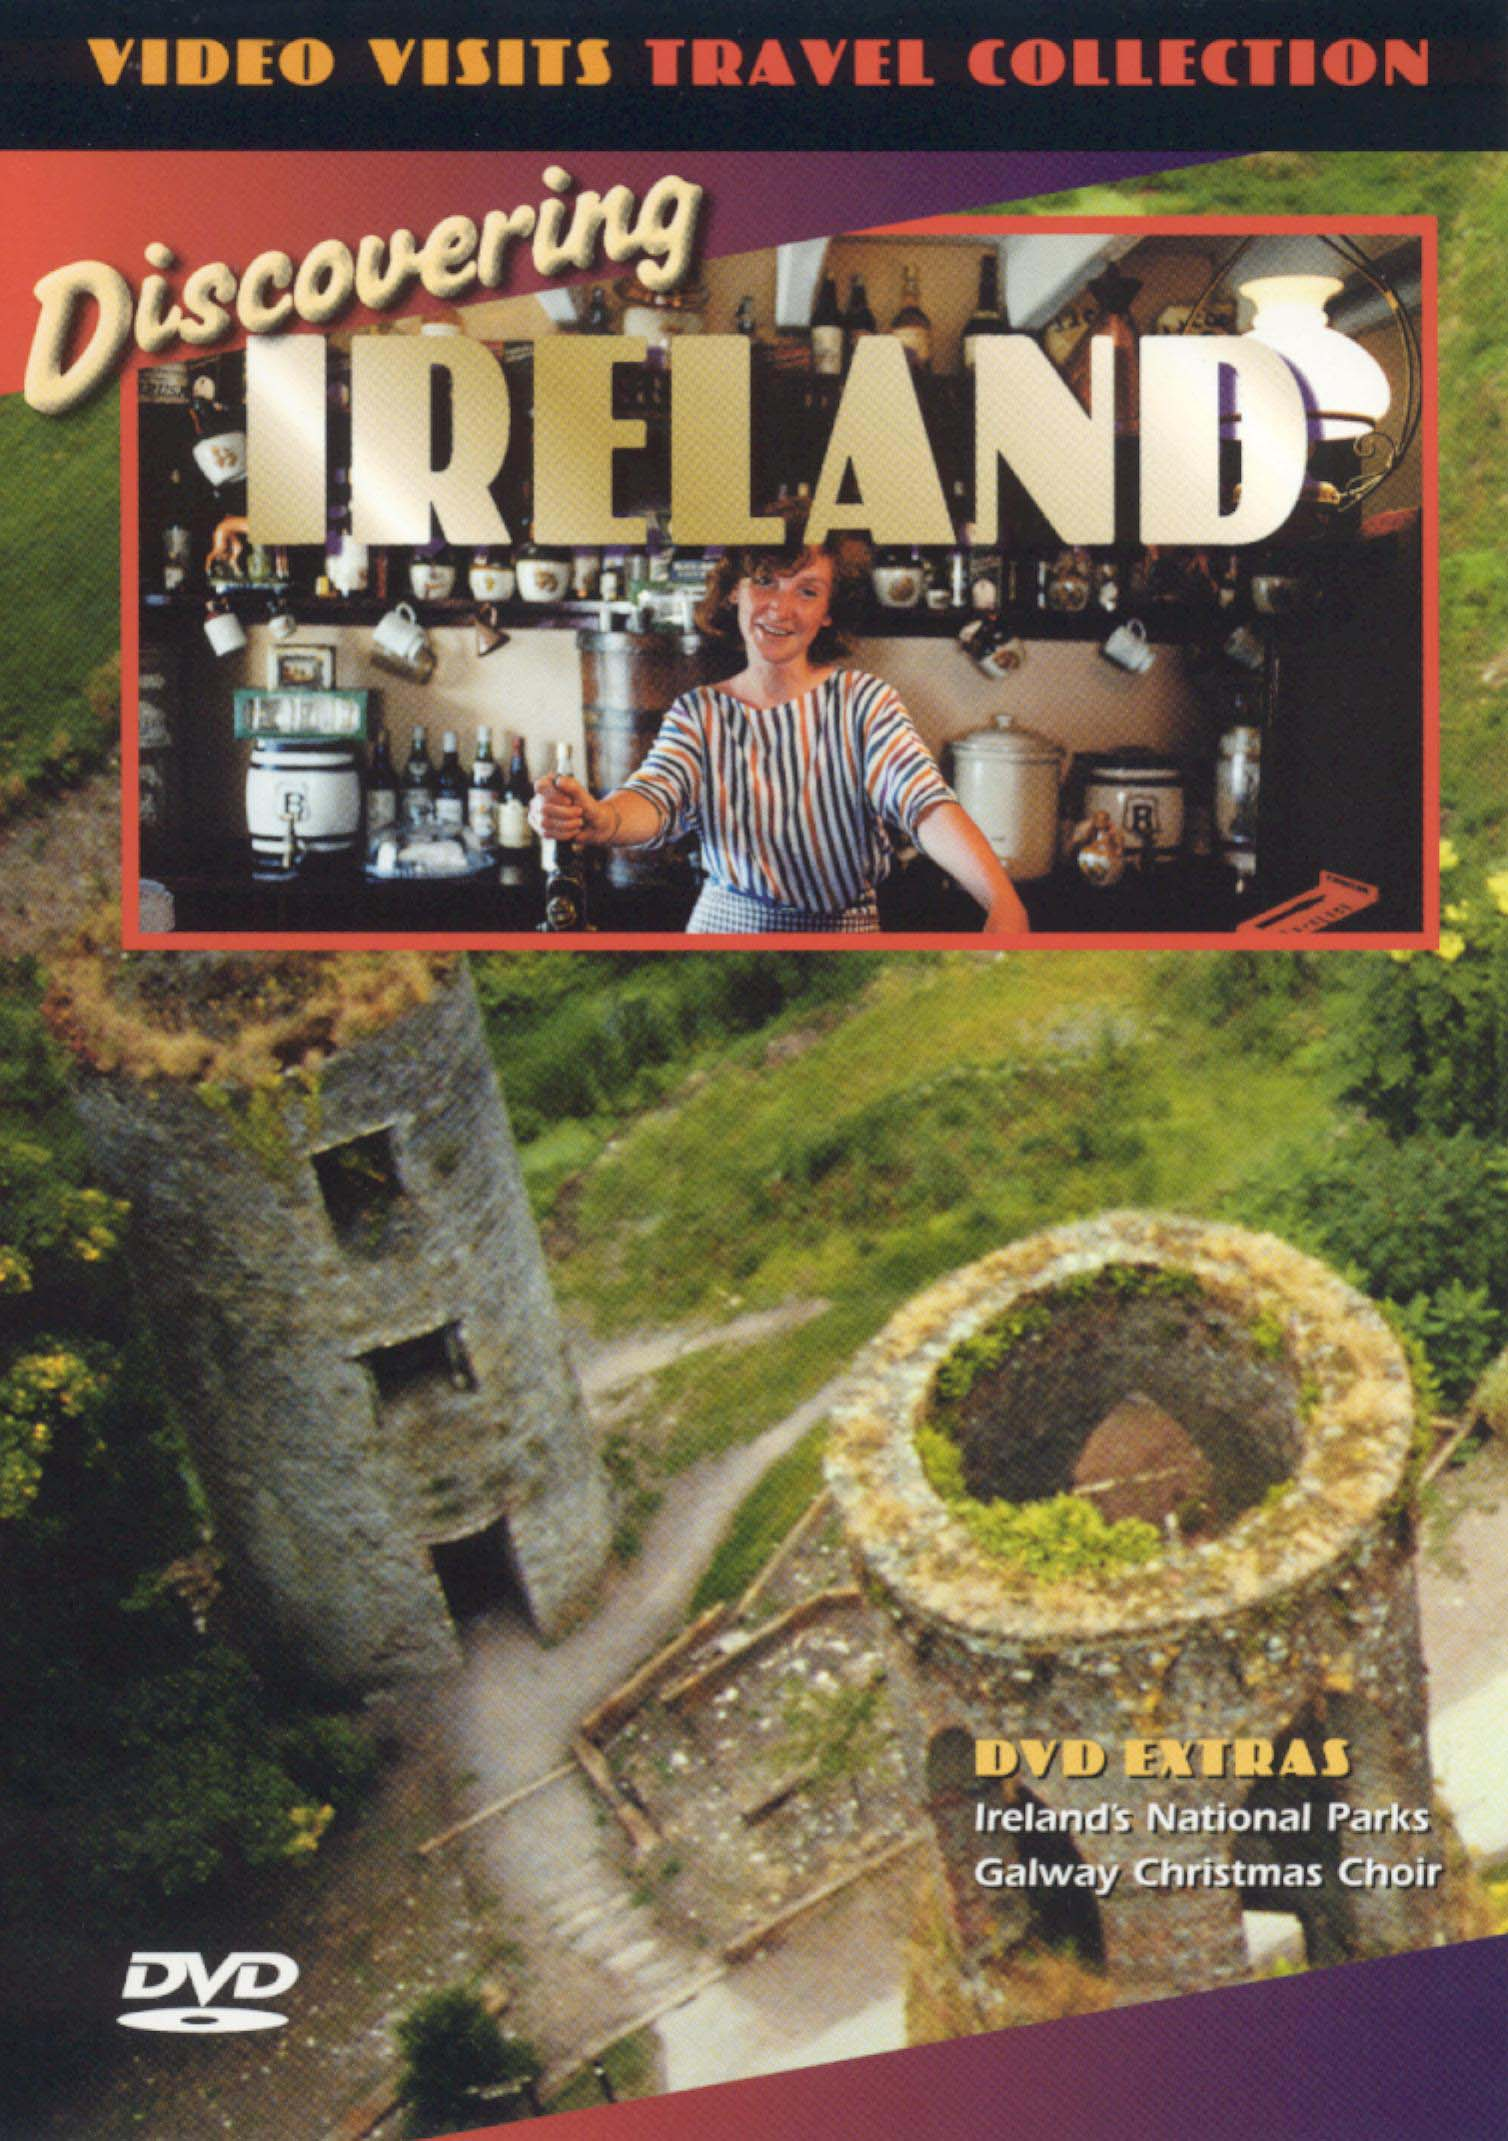 Video Visits Travel Collection: Discovering Ireland